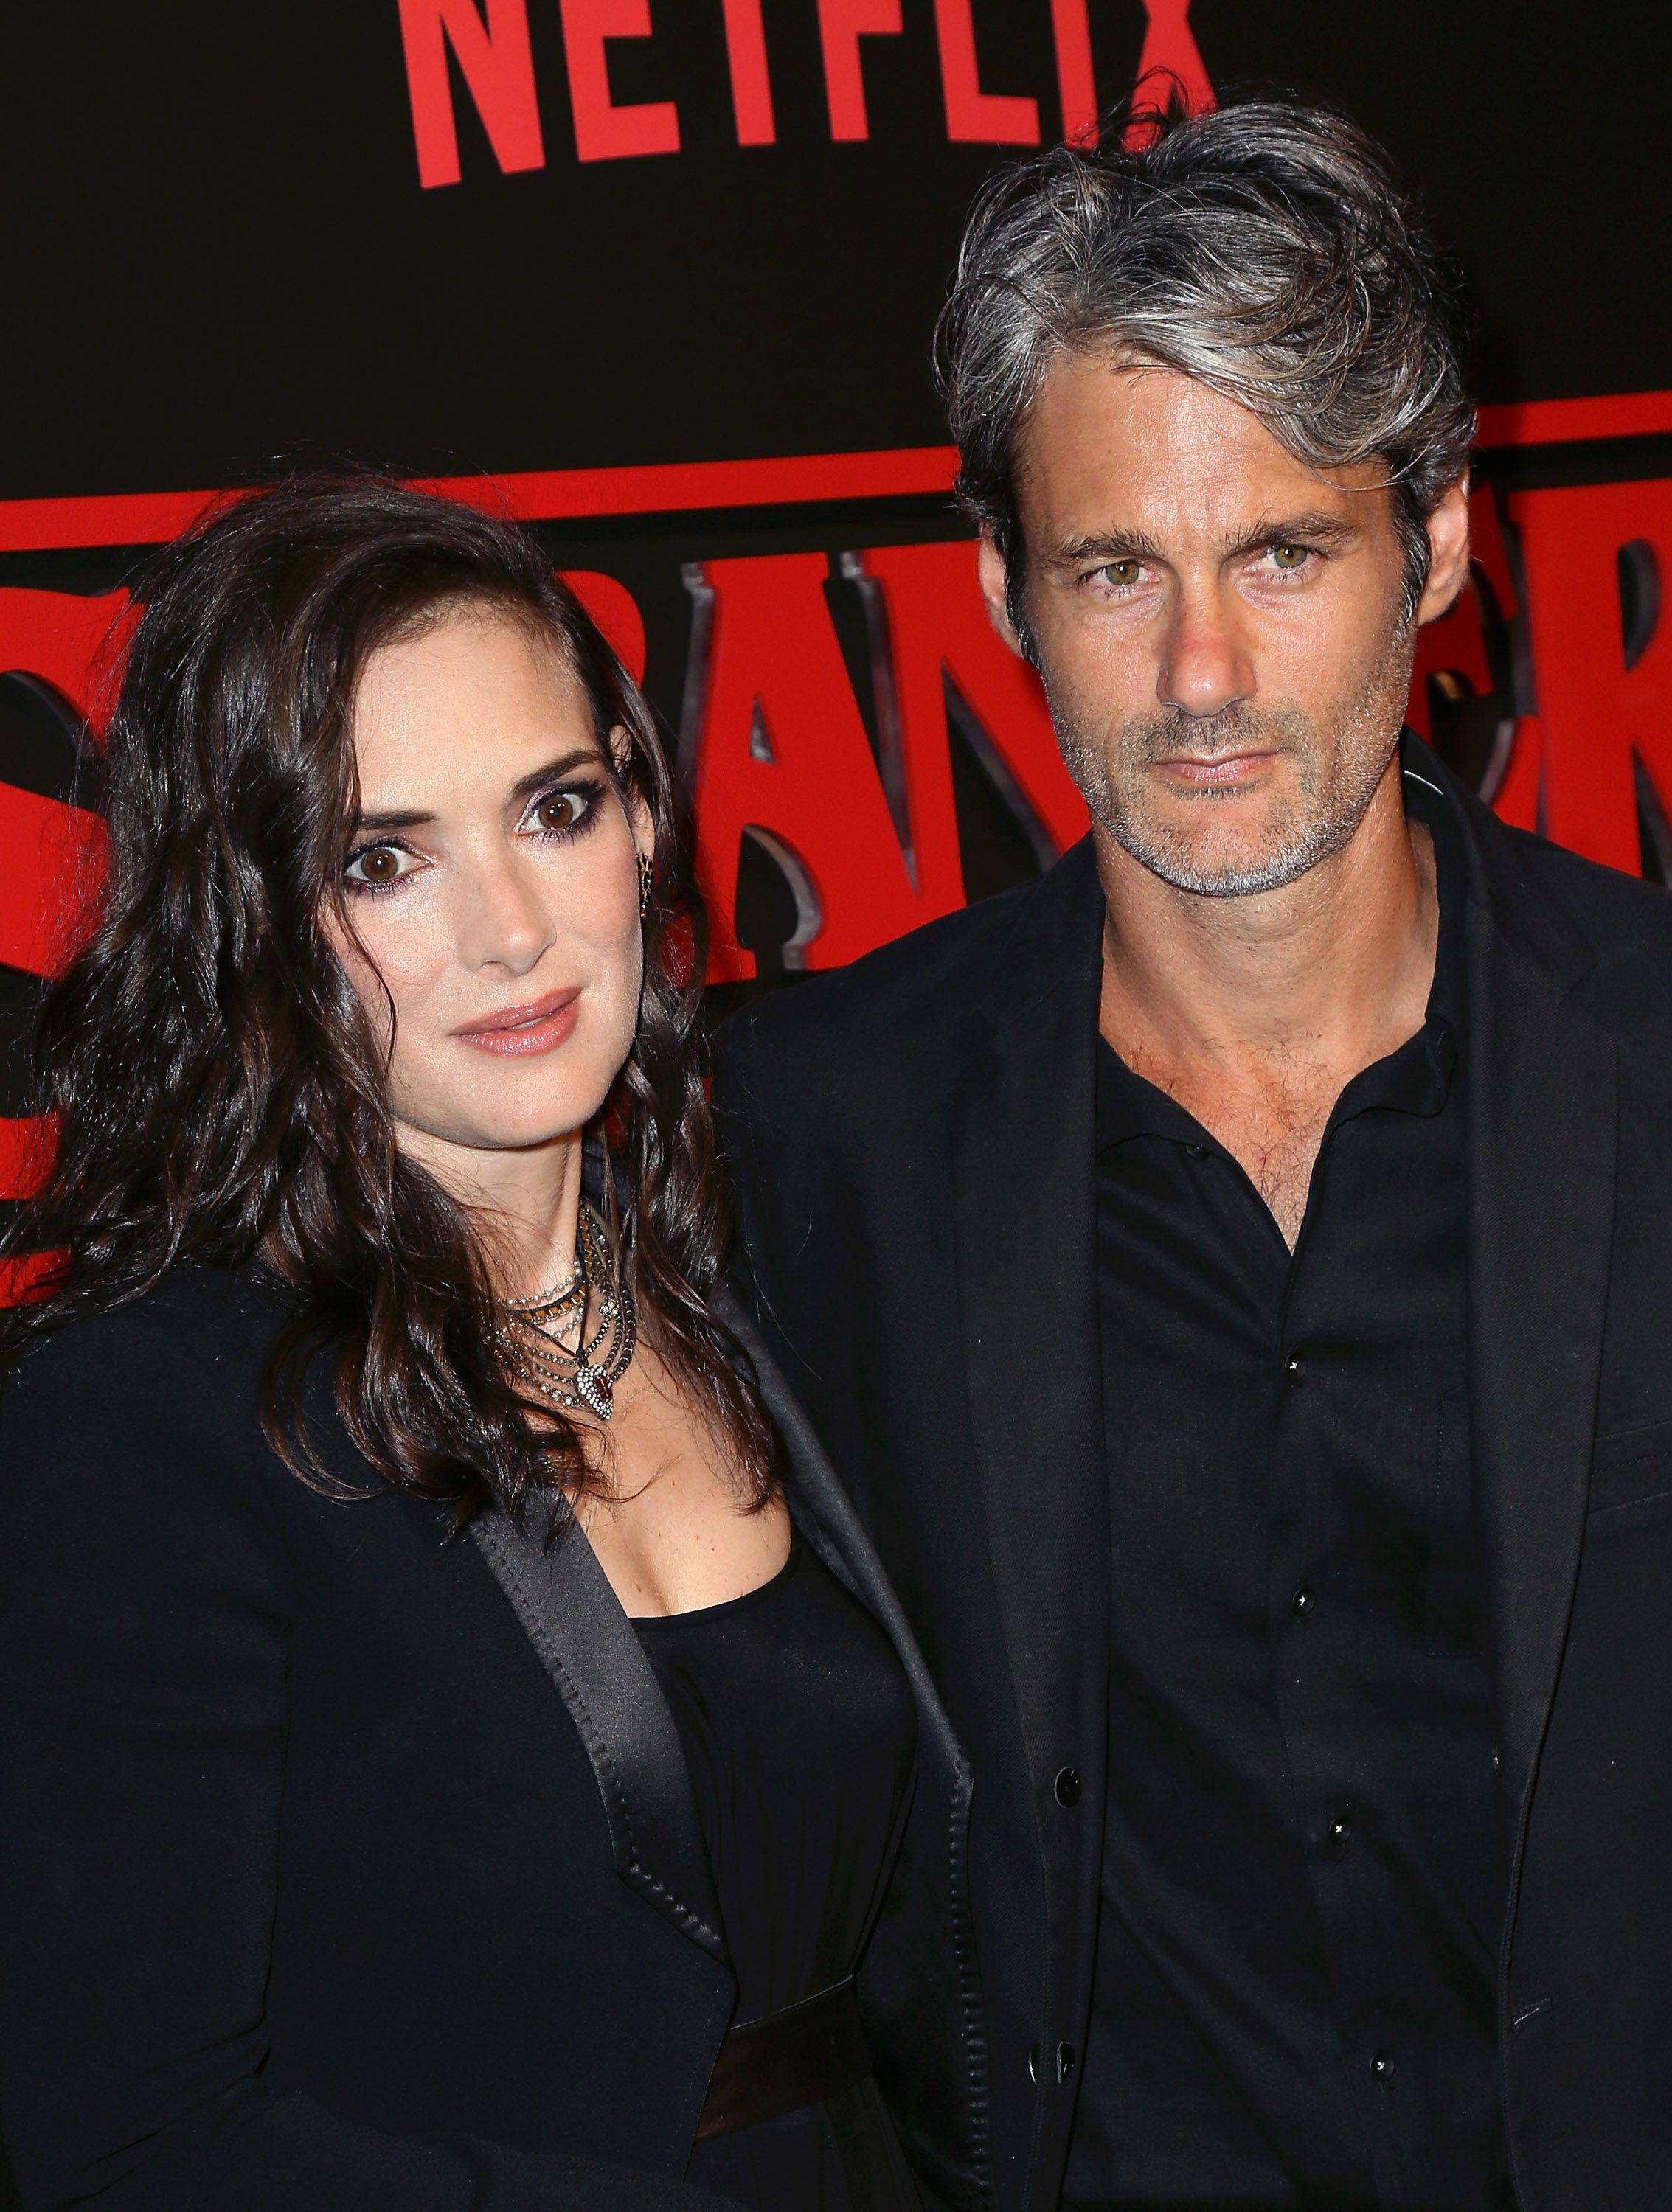 """Winona Ryder and Scott Mackinlay Hahn at the premiere of Netflix's """"Stranger Things"""" in 2016 in Los Angeles, California 